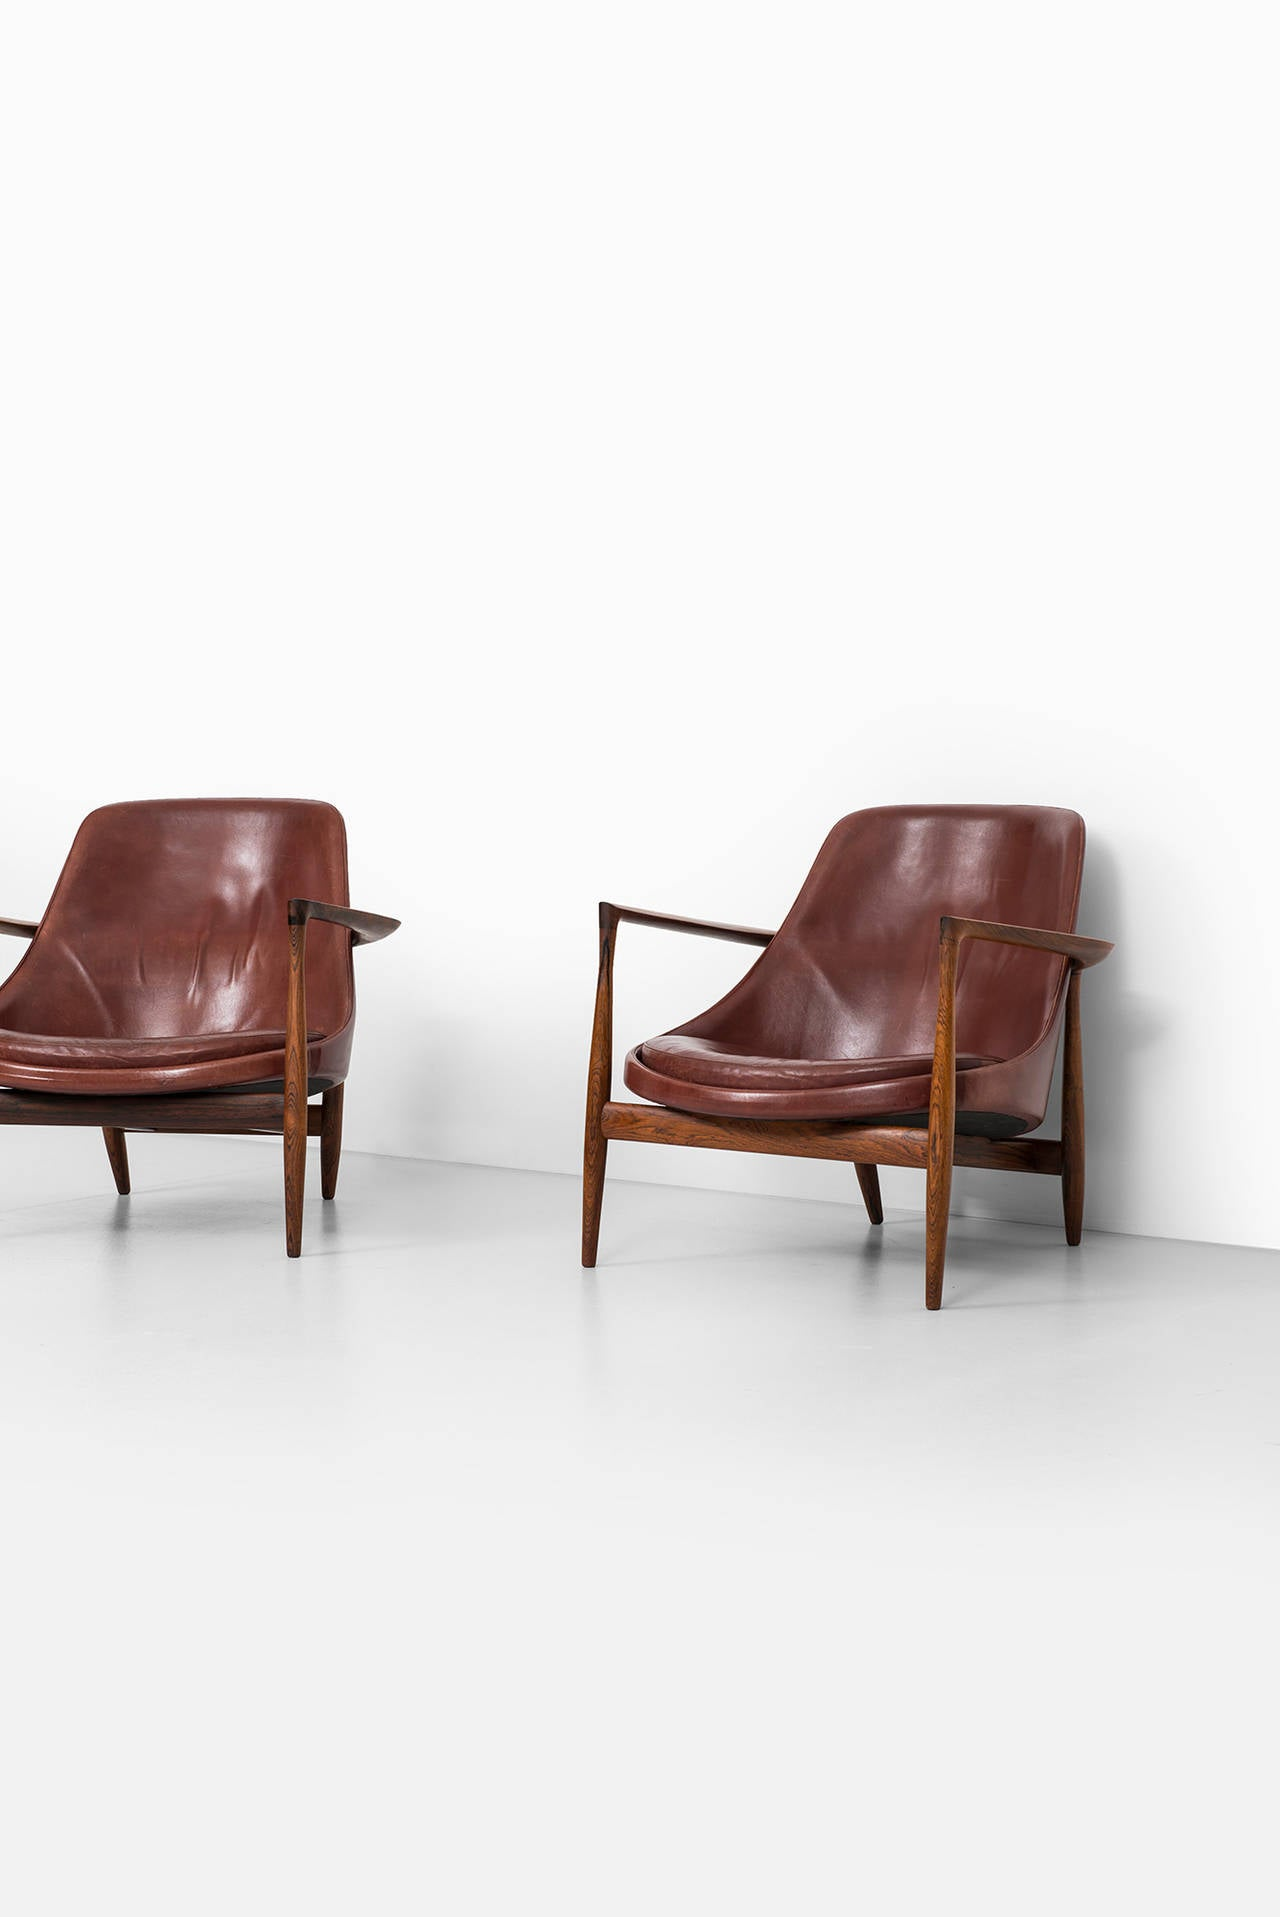 Ib Kofod-Larsen Elizabeth Easy Chairs by Christensen & Larsen in Denmark 3